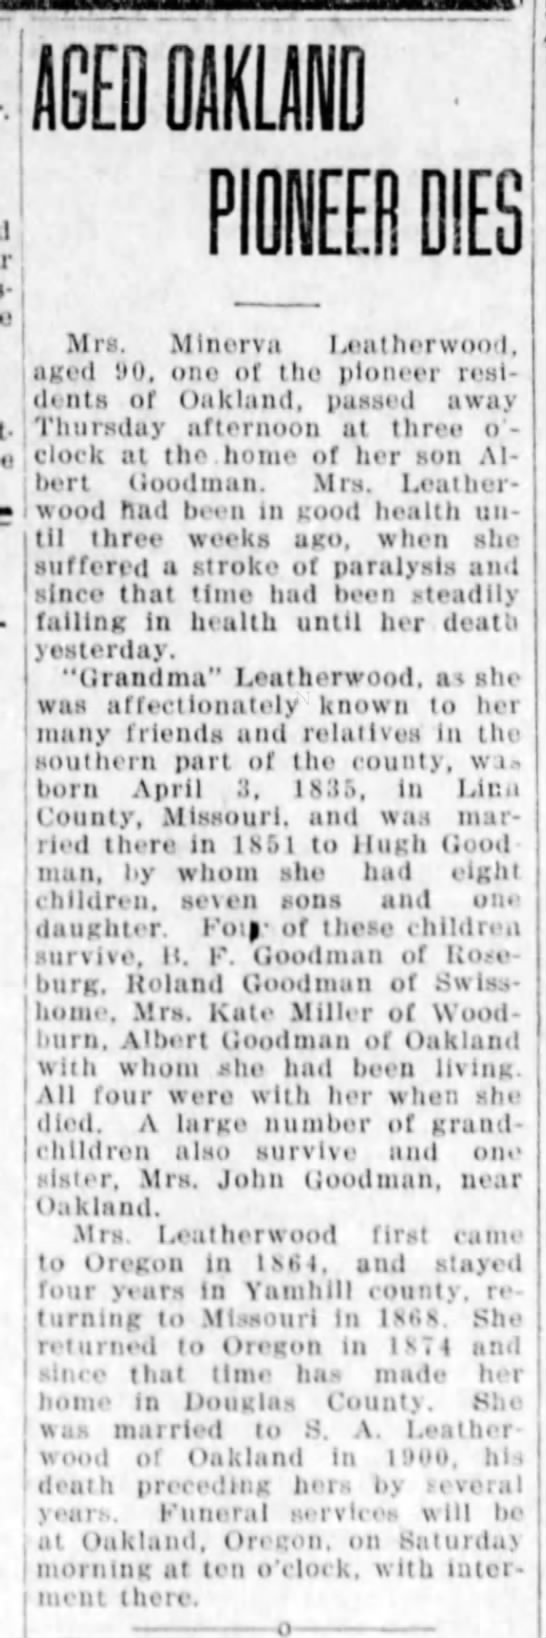 Leatherwood, Minerva The News-Review, Roseburg, Oregon Sept 11 1925, Pg 4 -